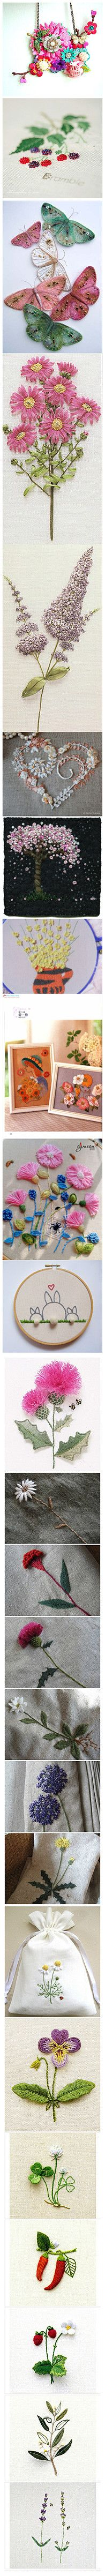 The webpage is in Chinese, but this embroidery looks pretty.